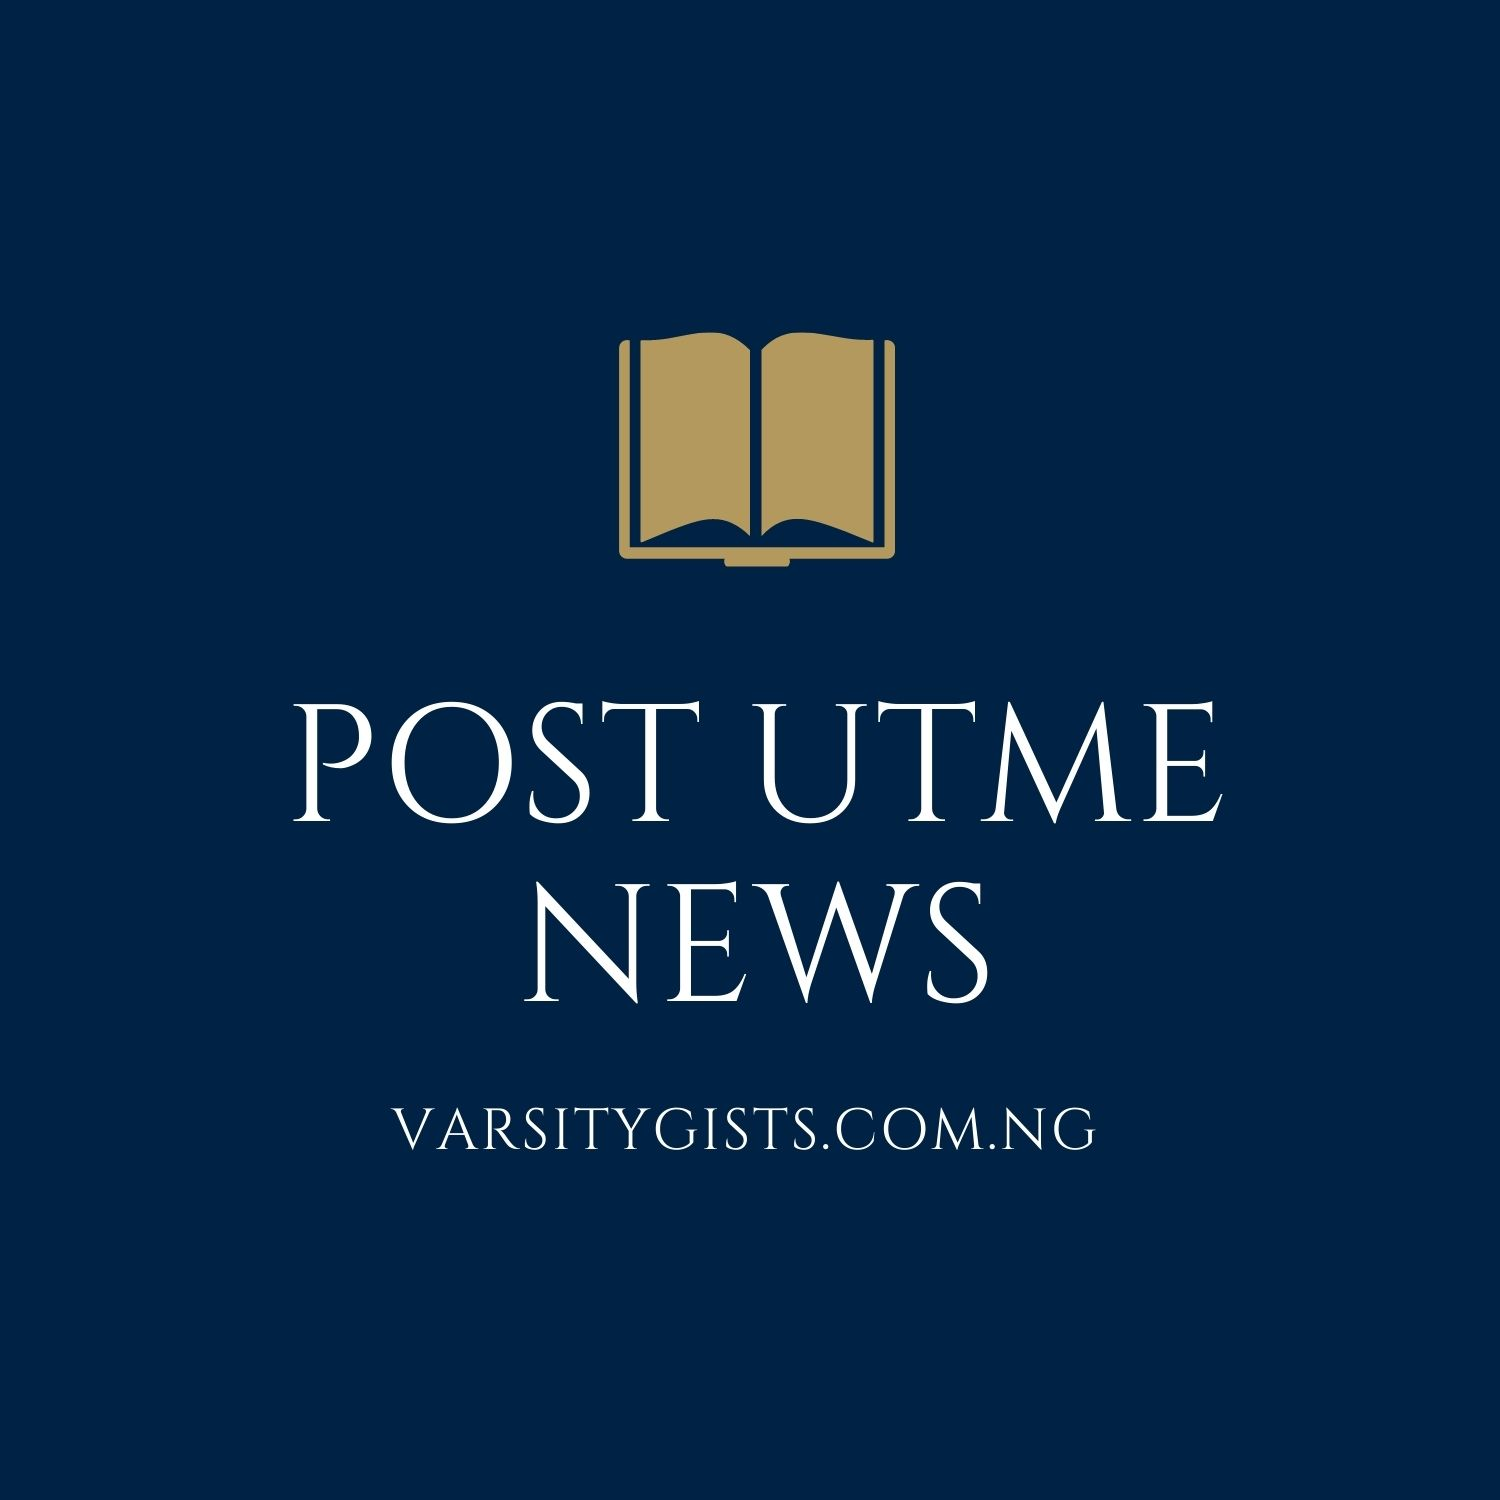 POST UTME 2020: List of Polytechnics that have released Post-UTME Forms